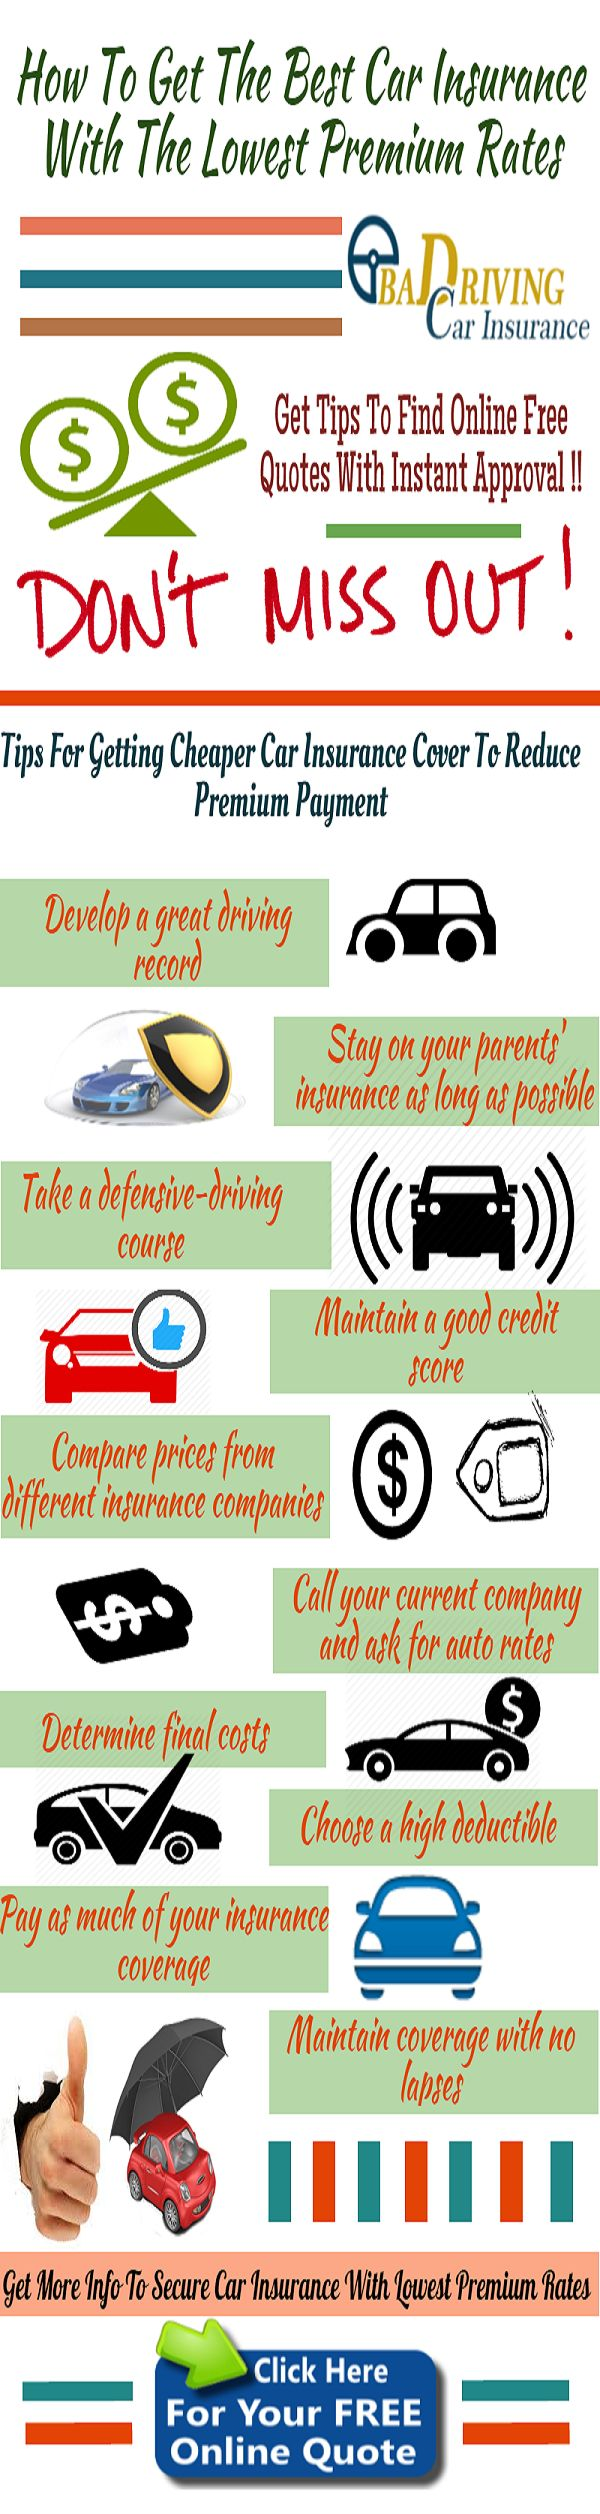 Elephant Auto Insurance Quote Extraordinary 9 Best Carauto Insurance Infographic Images On Pinterest . Review